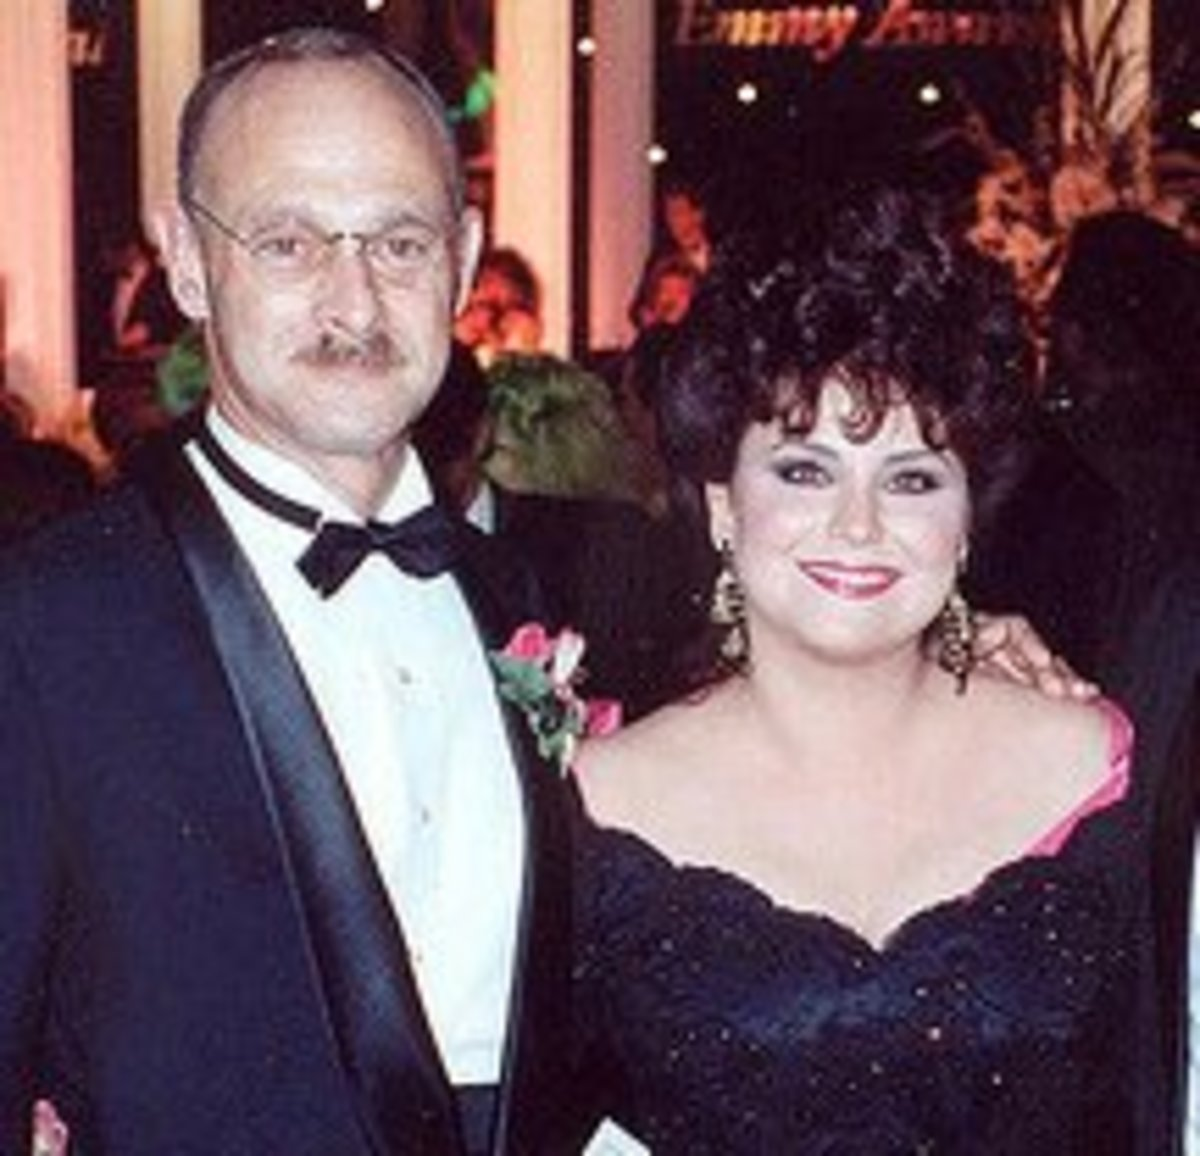 Gerald Macraney and wife, full-figured star, the beautiful Delta Burke. Burke now creates flattering and comfortable plus-sized fashions.